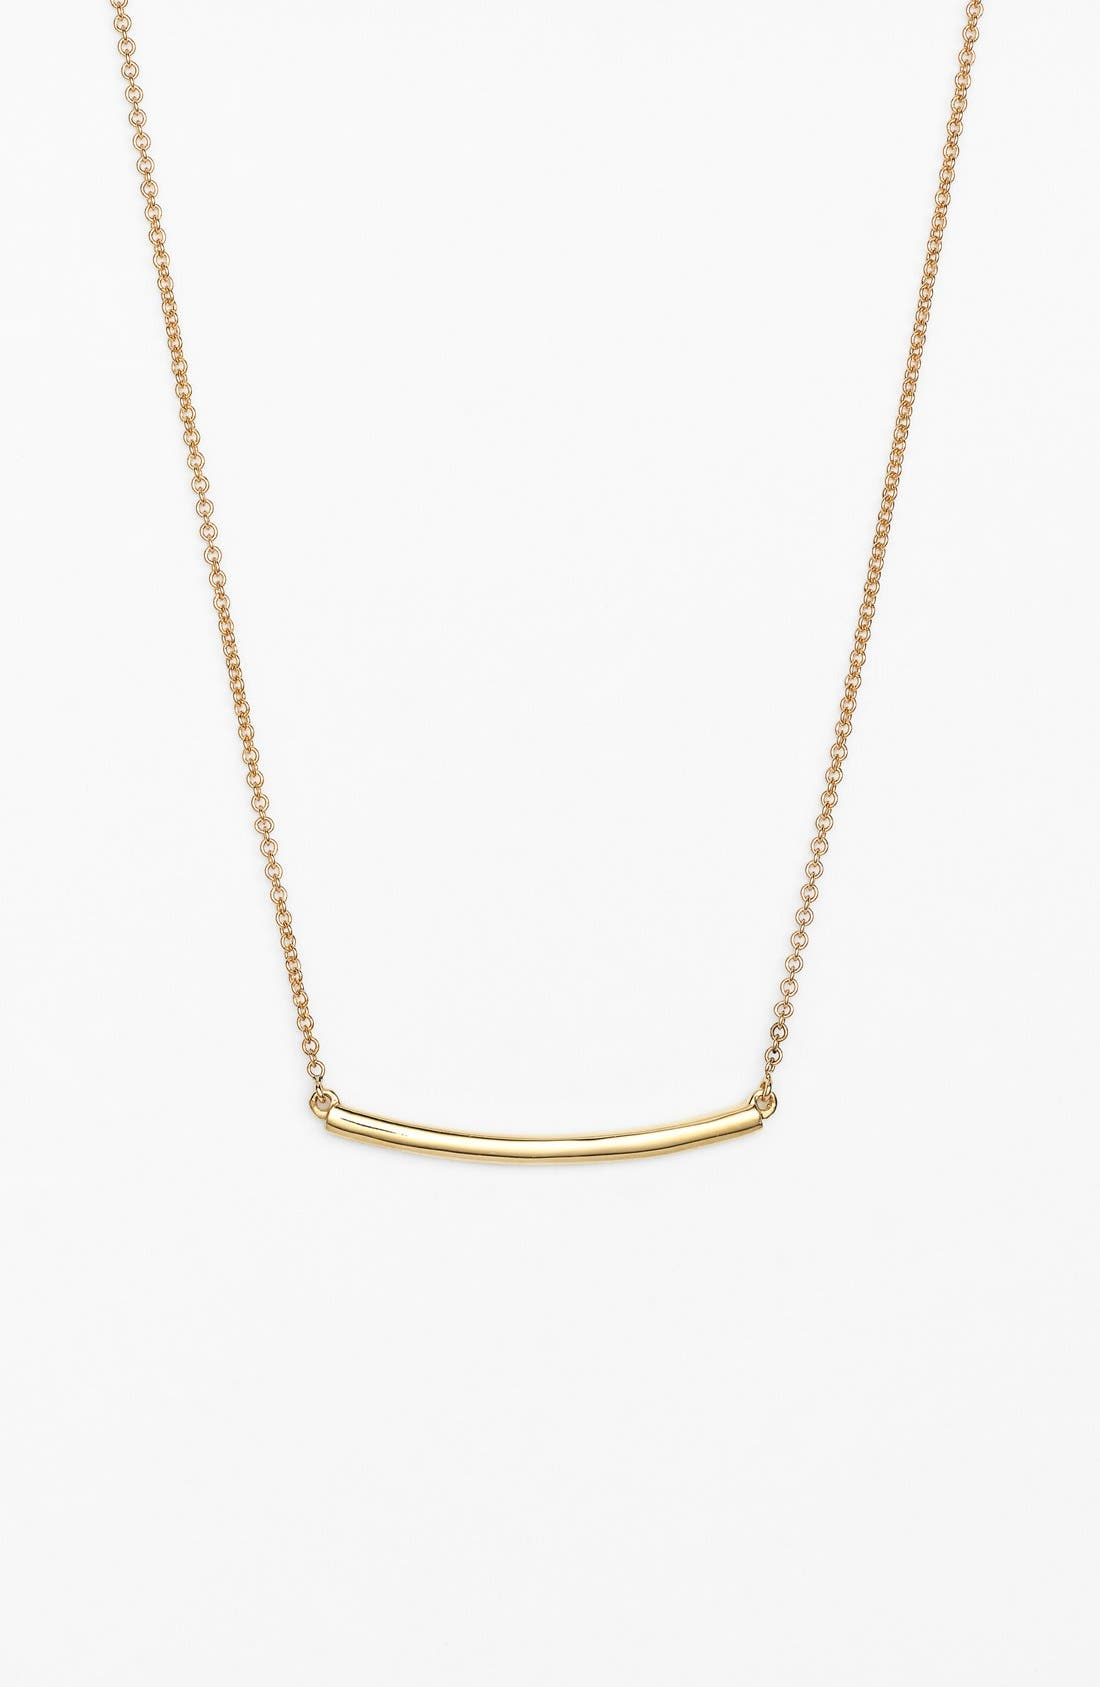 Alternate Image 1 Selected - Bony Levy Bar Pendant Necklace (Nordstrom Exclusive)